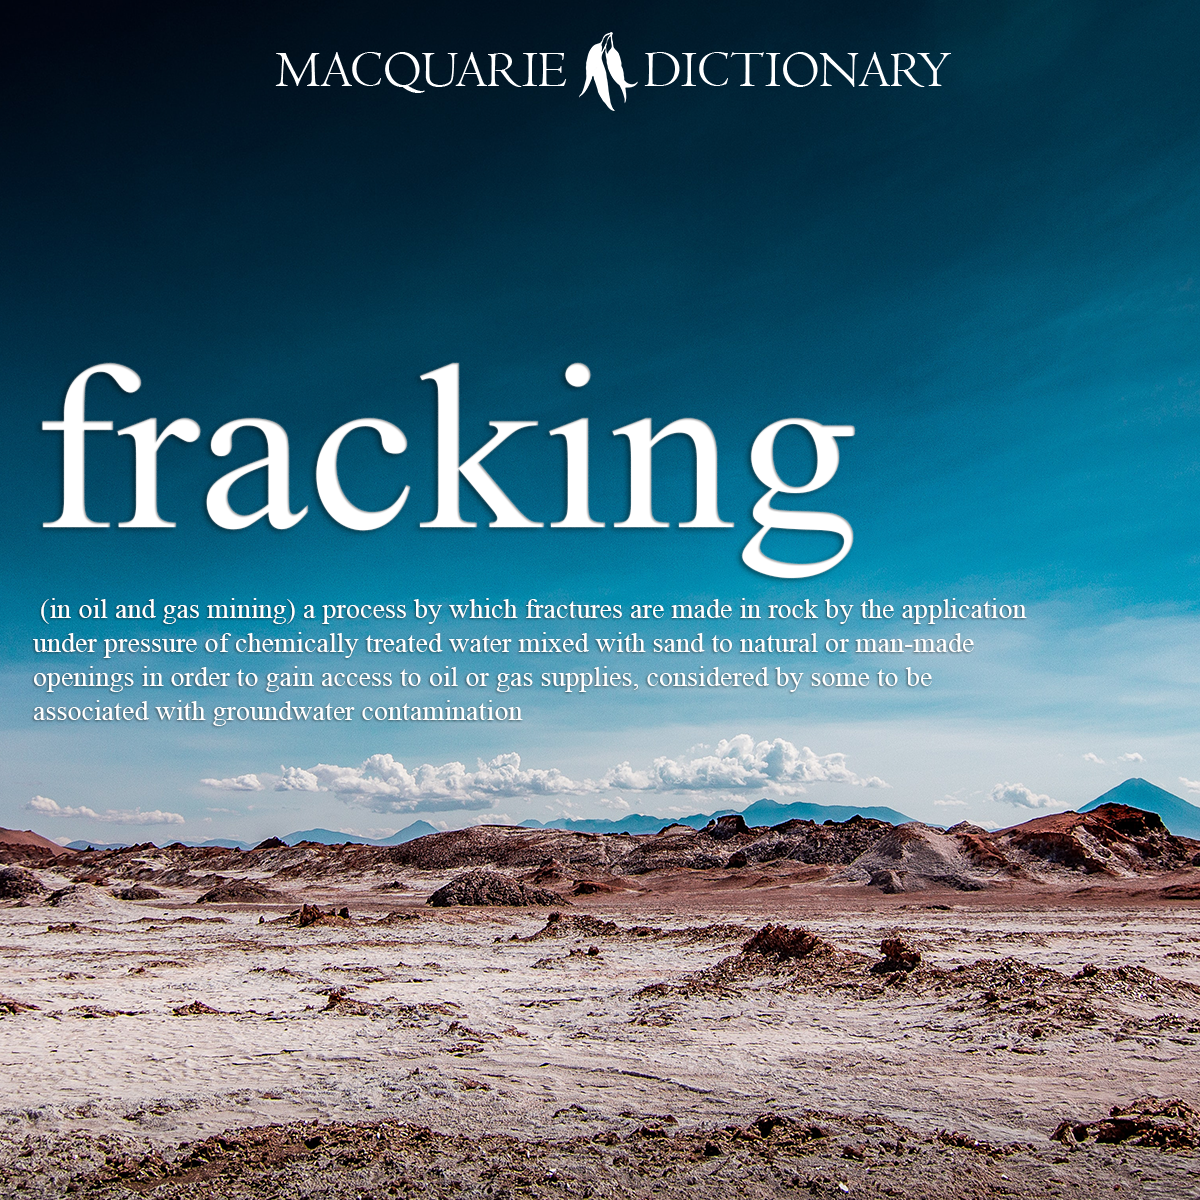 fracking - (in oil and gas mining) a process by which fractures are made in rock by the application under pressure of chemically treated water mixed with sand to natural or man-made openings in order to gain access to oil or gas supplies, considered by some to be associated with groundwater contamination; fracking.